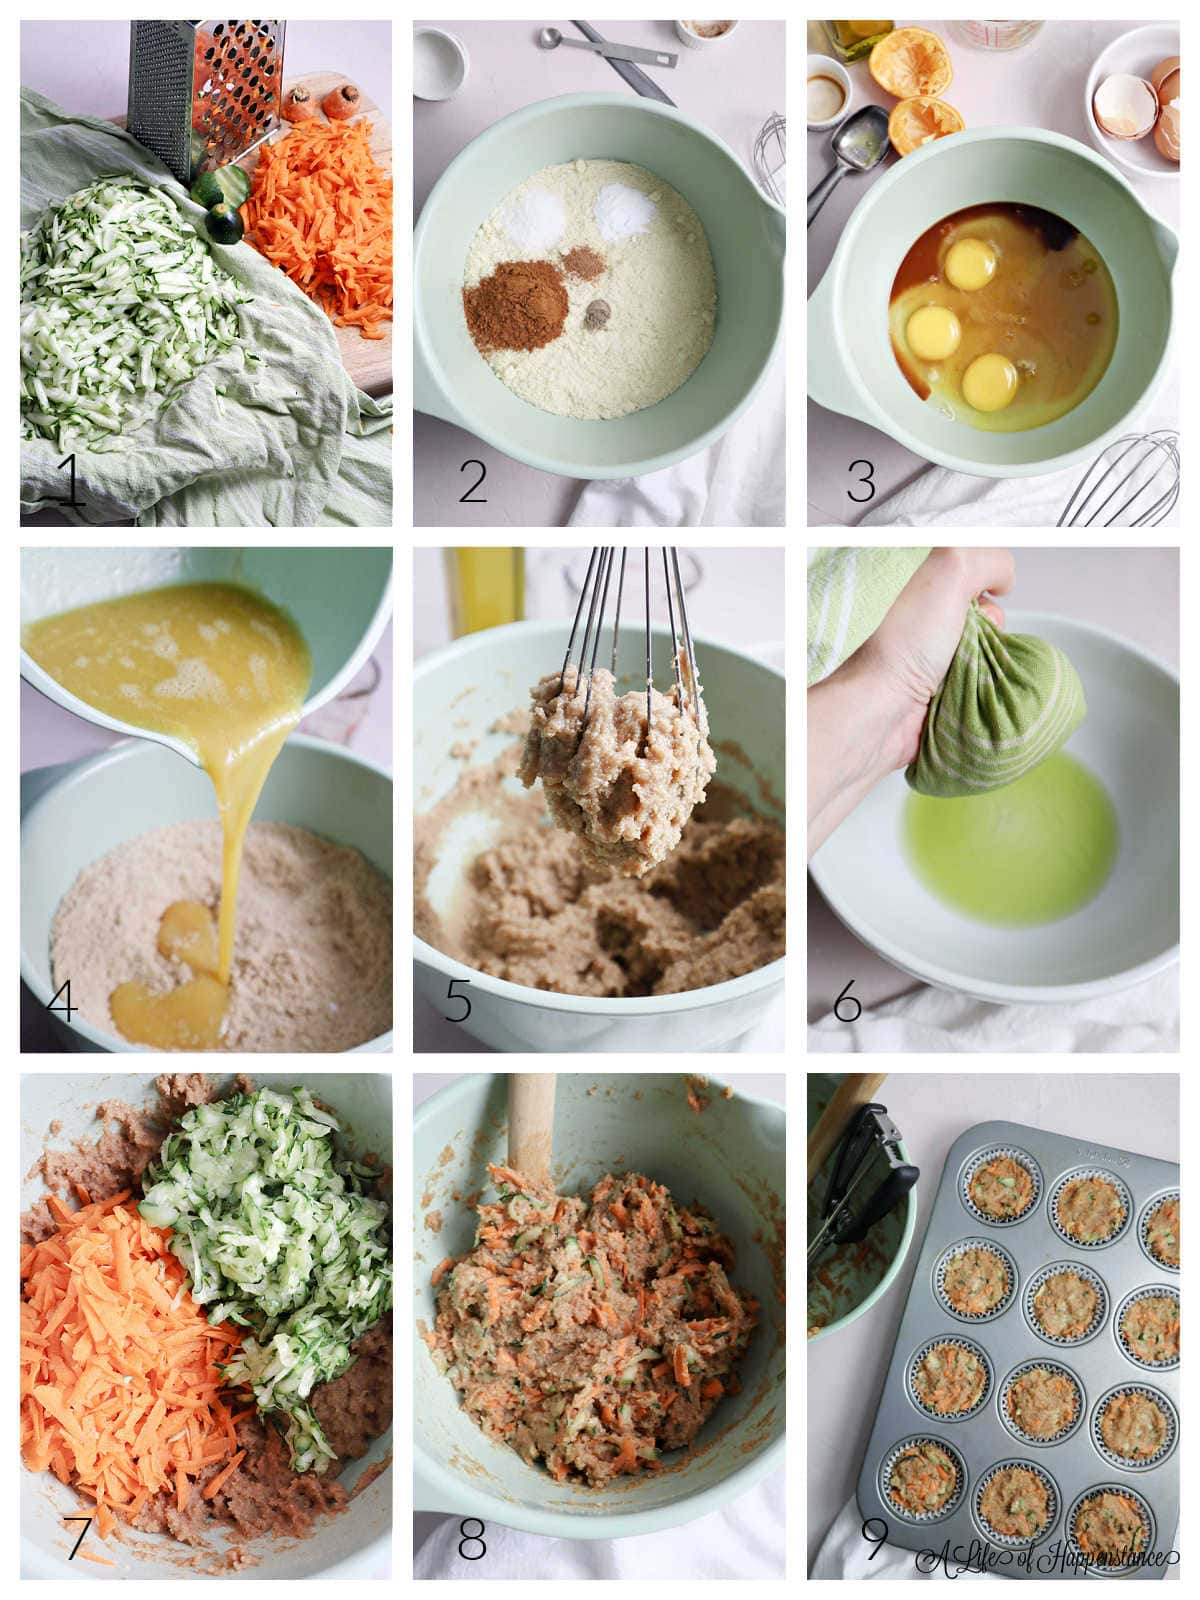 A nine photo collage showing how to make the muffins. Photo 1; shredded zucchini and carrots on a cutting board. Photo 2; dry ingredients in a mint green mixing bowl. Photo 3; wet ingredients in a mint green mixing bowl. Photo 4; pouring the wet ingredients into the bowl with the dry ingredients. Photo 5; the batter in a whisk. Photo 6; squeezing the liquid from the shredded zucchini. Photo 7; the shredded zucchini and carrots in the mixing bowl with the batter. Photo 8; the vegetables mixed into the batter. Photo 9; lined muffin tine filled almost to the top with the batter.